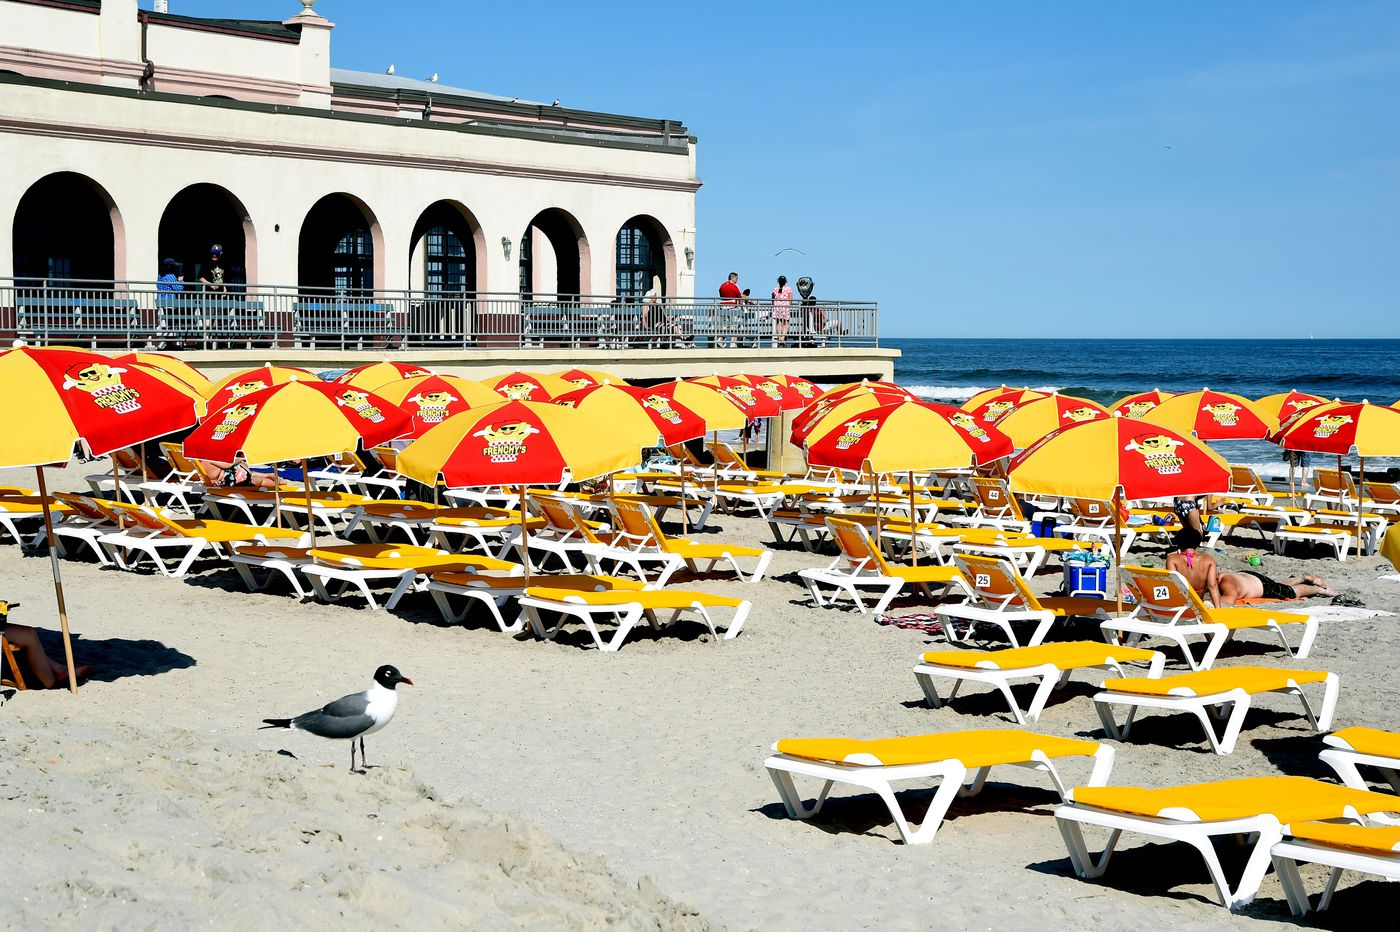 Umbrella wars erupt in Ocean City as Frenchy's french fry company lays claim to beach near Music Pier